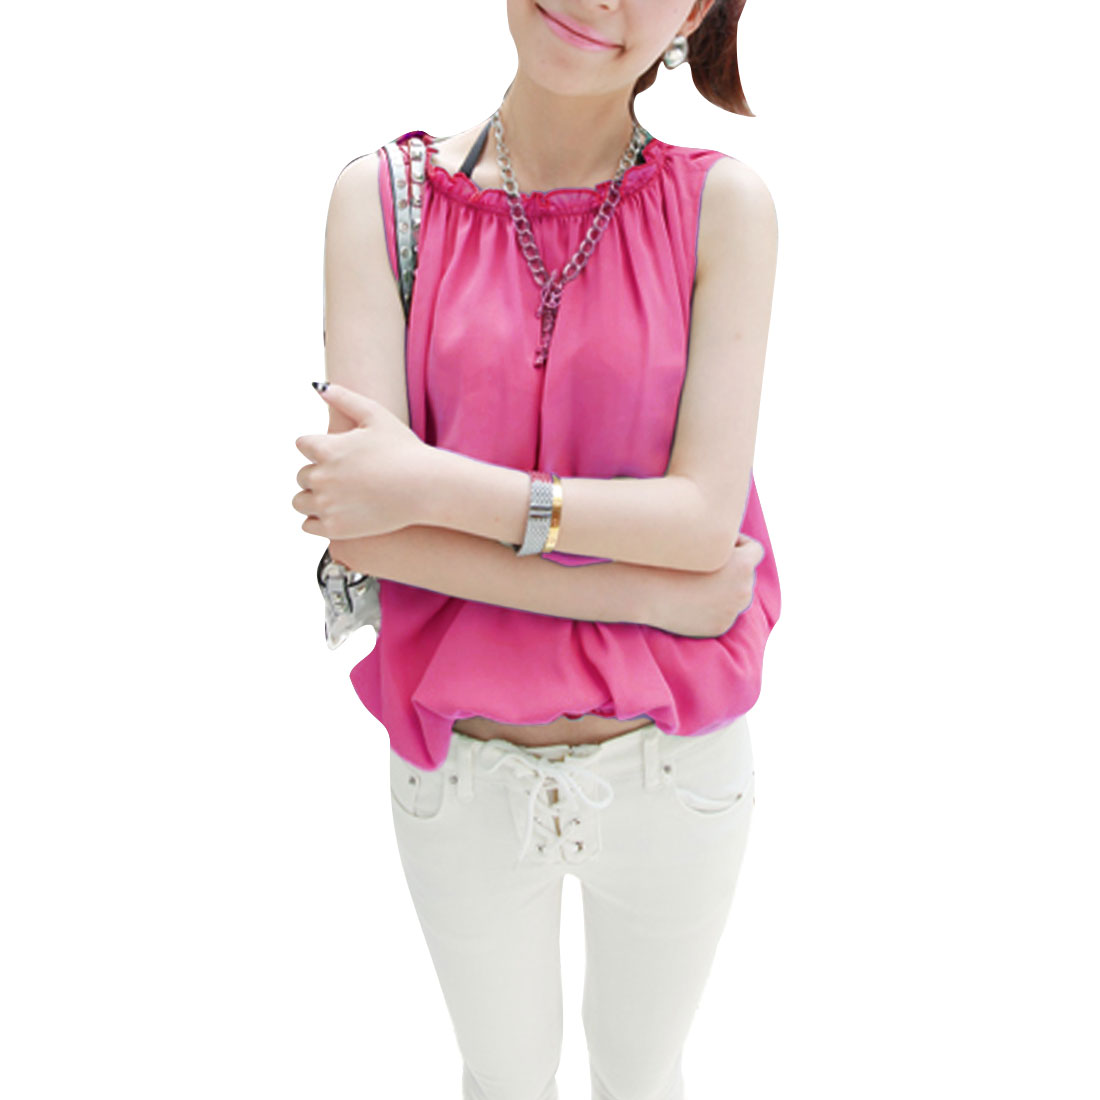 Lady Round Neck Sleeveless Hot Fashion Tops Blouses Fuchsia S